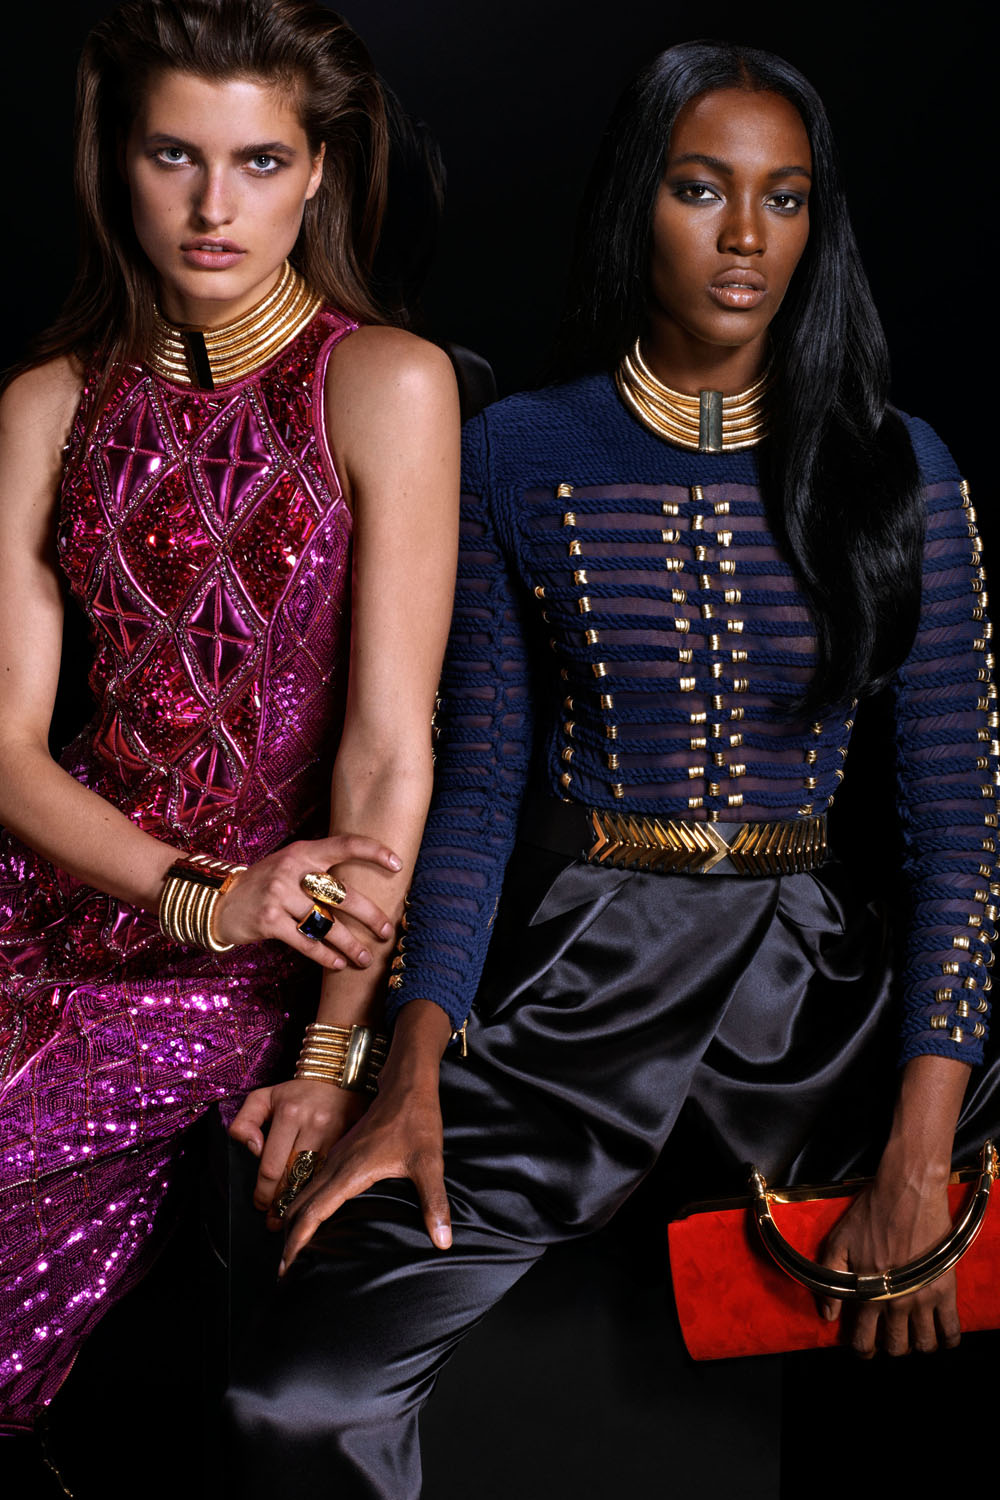 Balmain Taps Digital Models To Front Their New Campaign